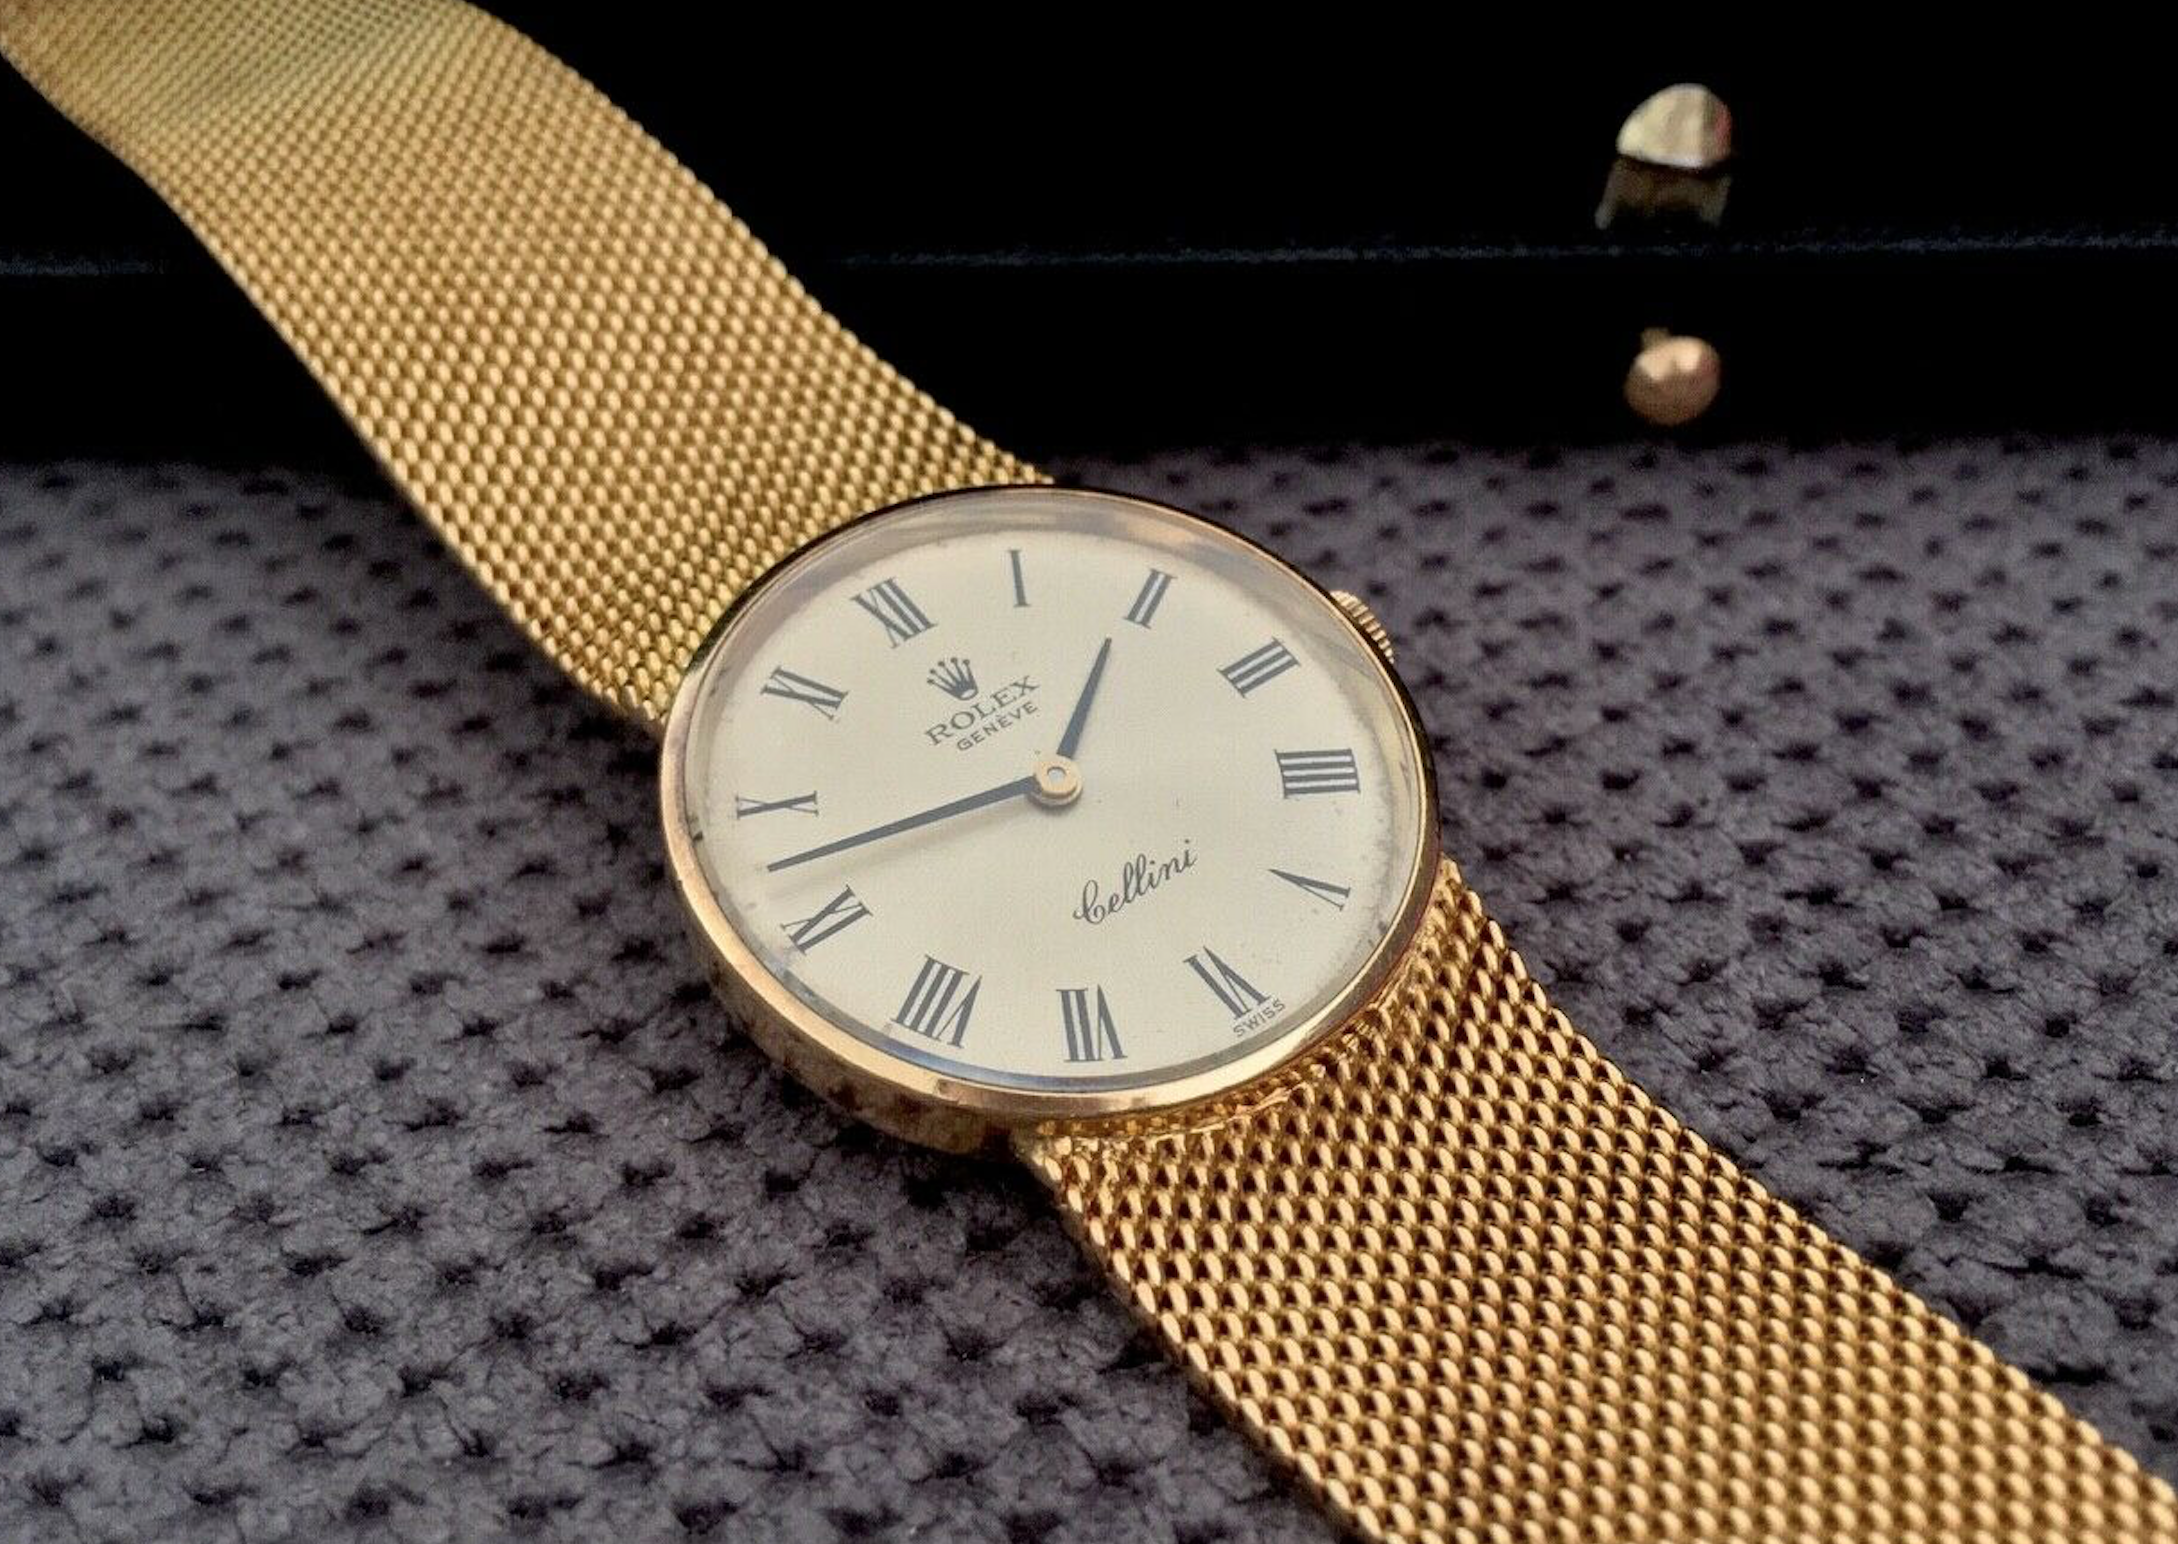 VINTAGE LADIES ROLEX CELLINI IN 18K 750 YELLOW GOLD